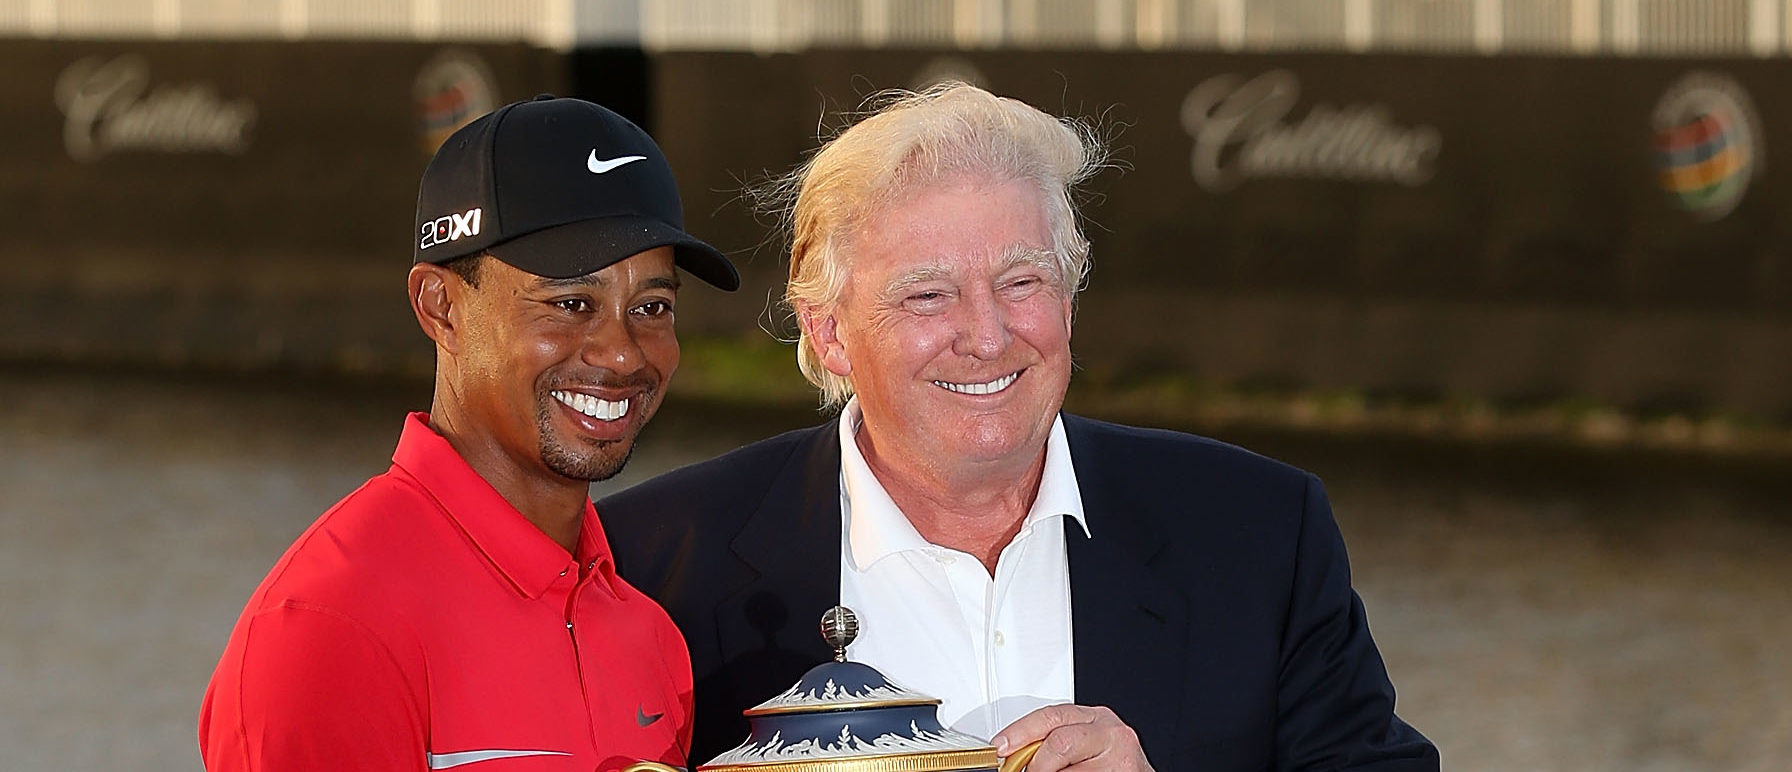 trump golfs with tiger woods  jack nicklaus in florida